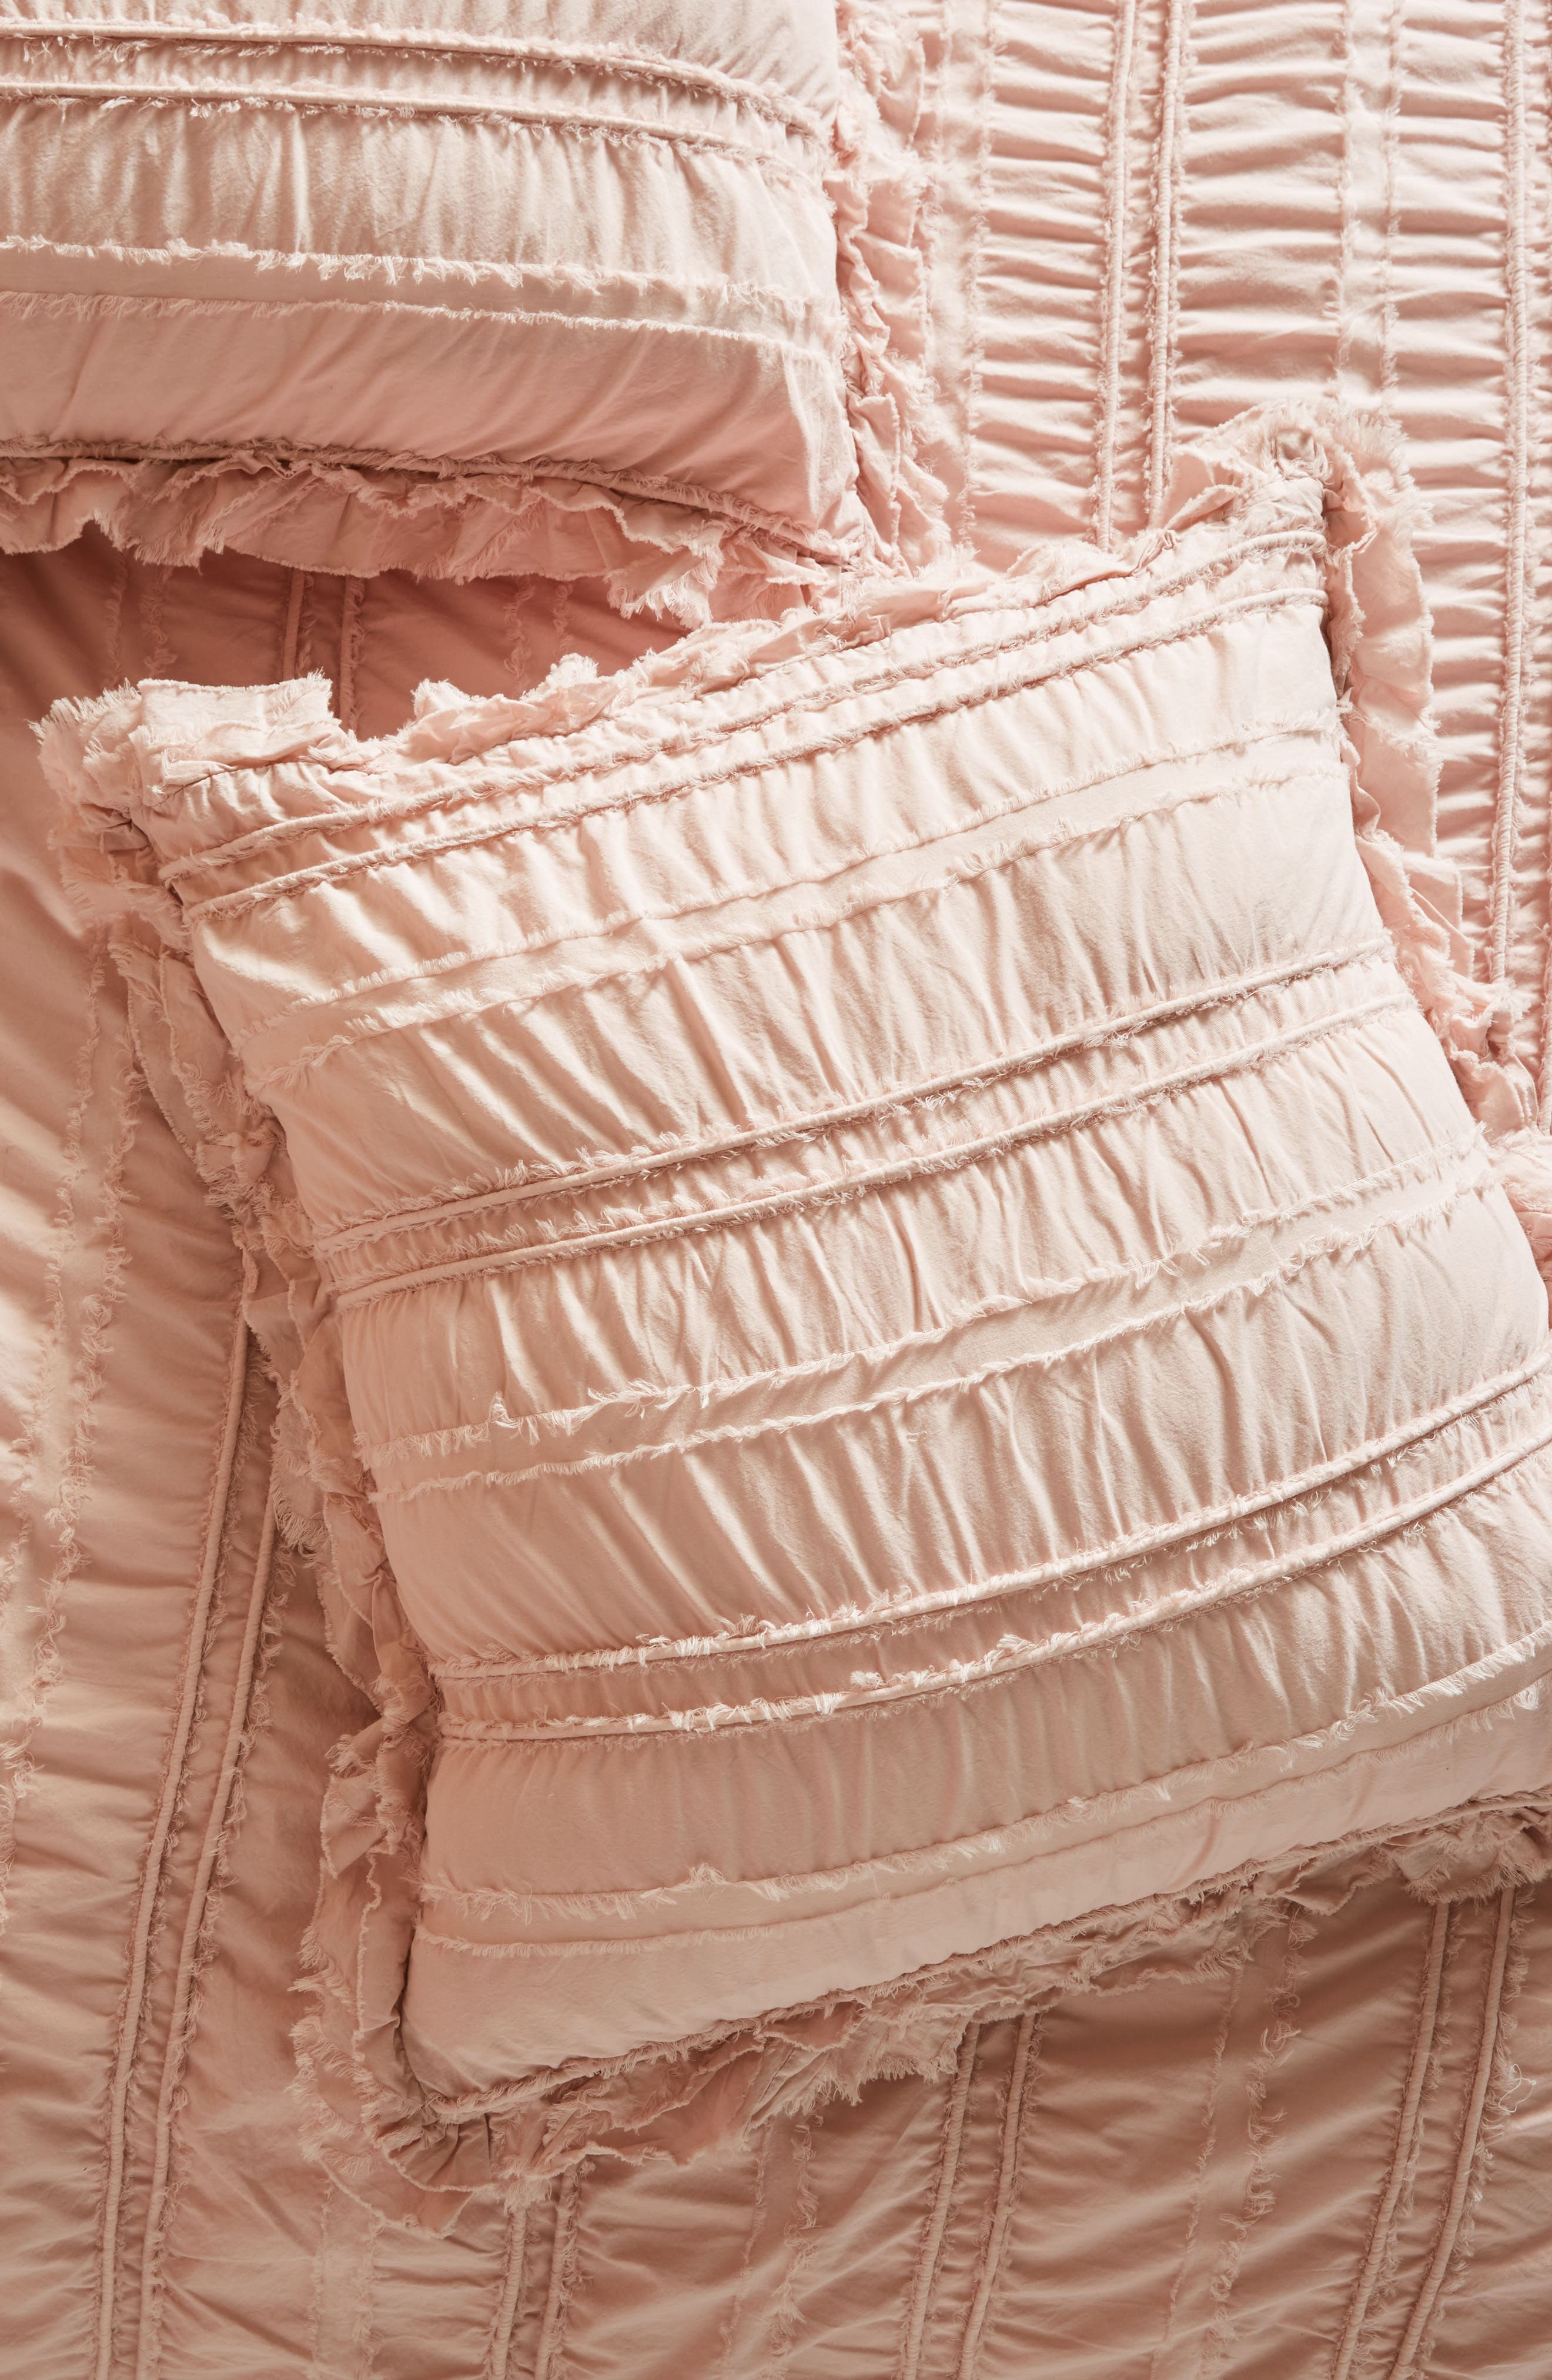 Corded Euro Sham,                             Main thumbnail 1, color,                             Blush Peach